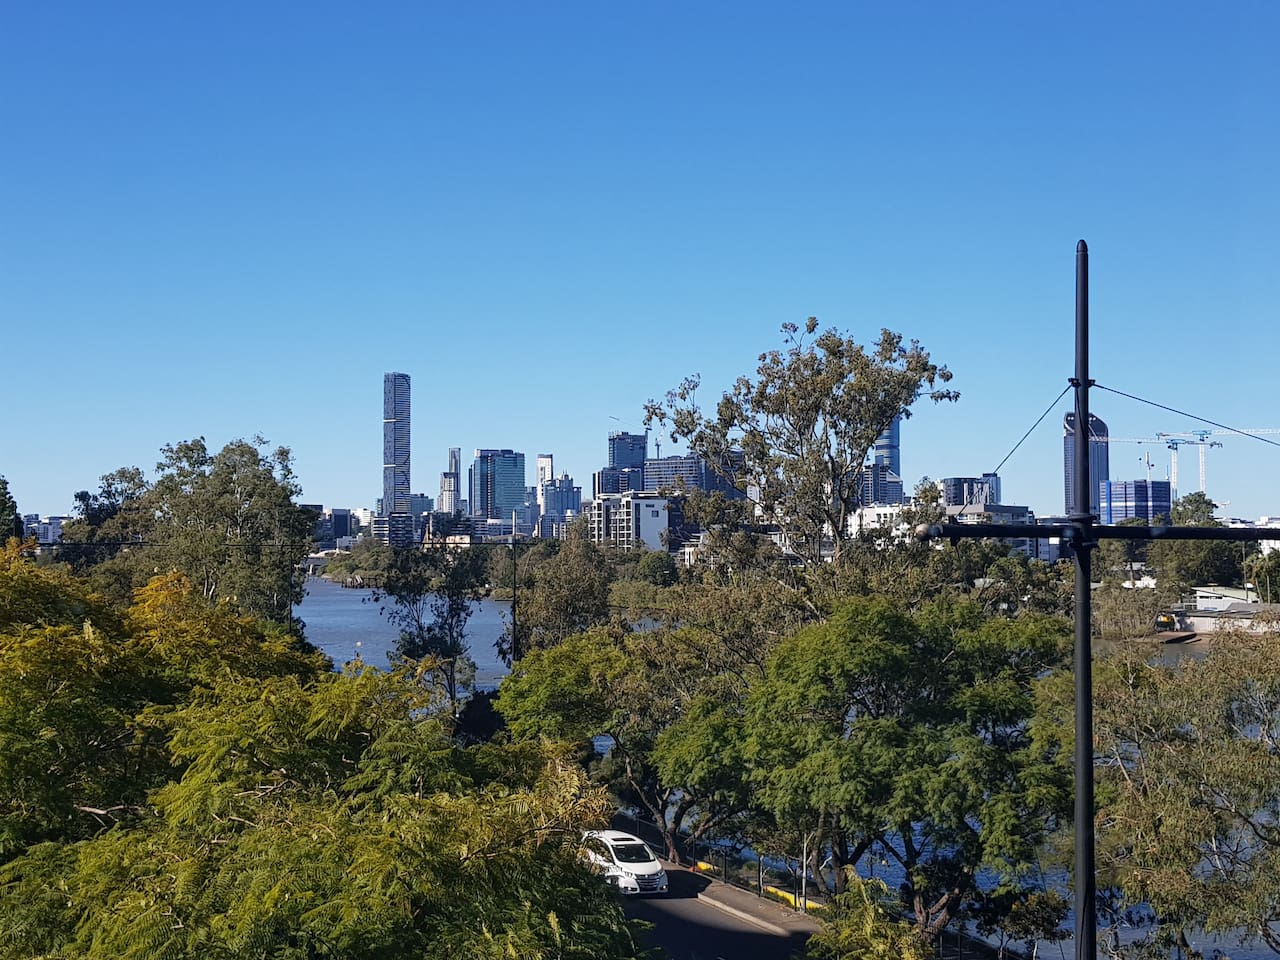 The magnificent view of the city skyline and Brisbane river